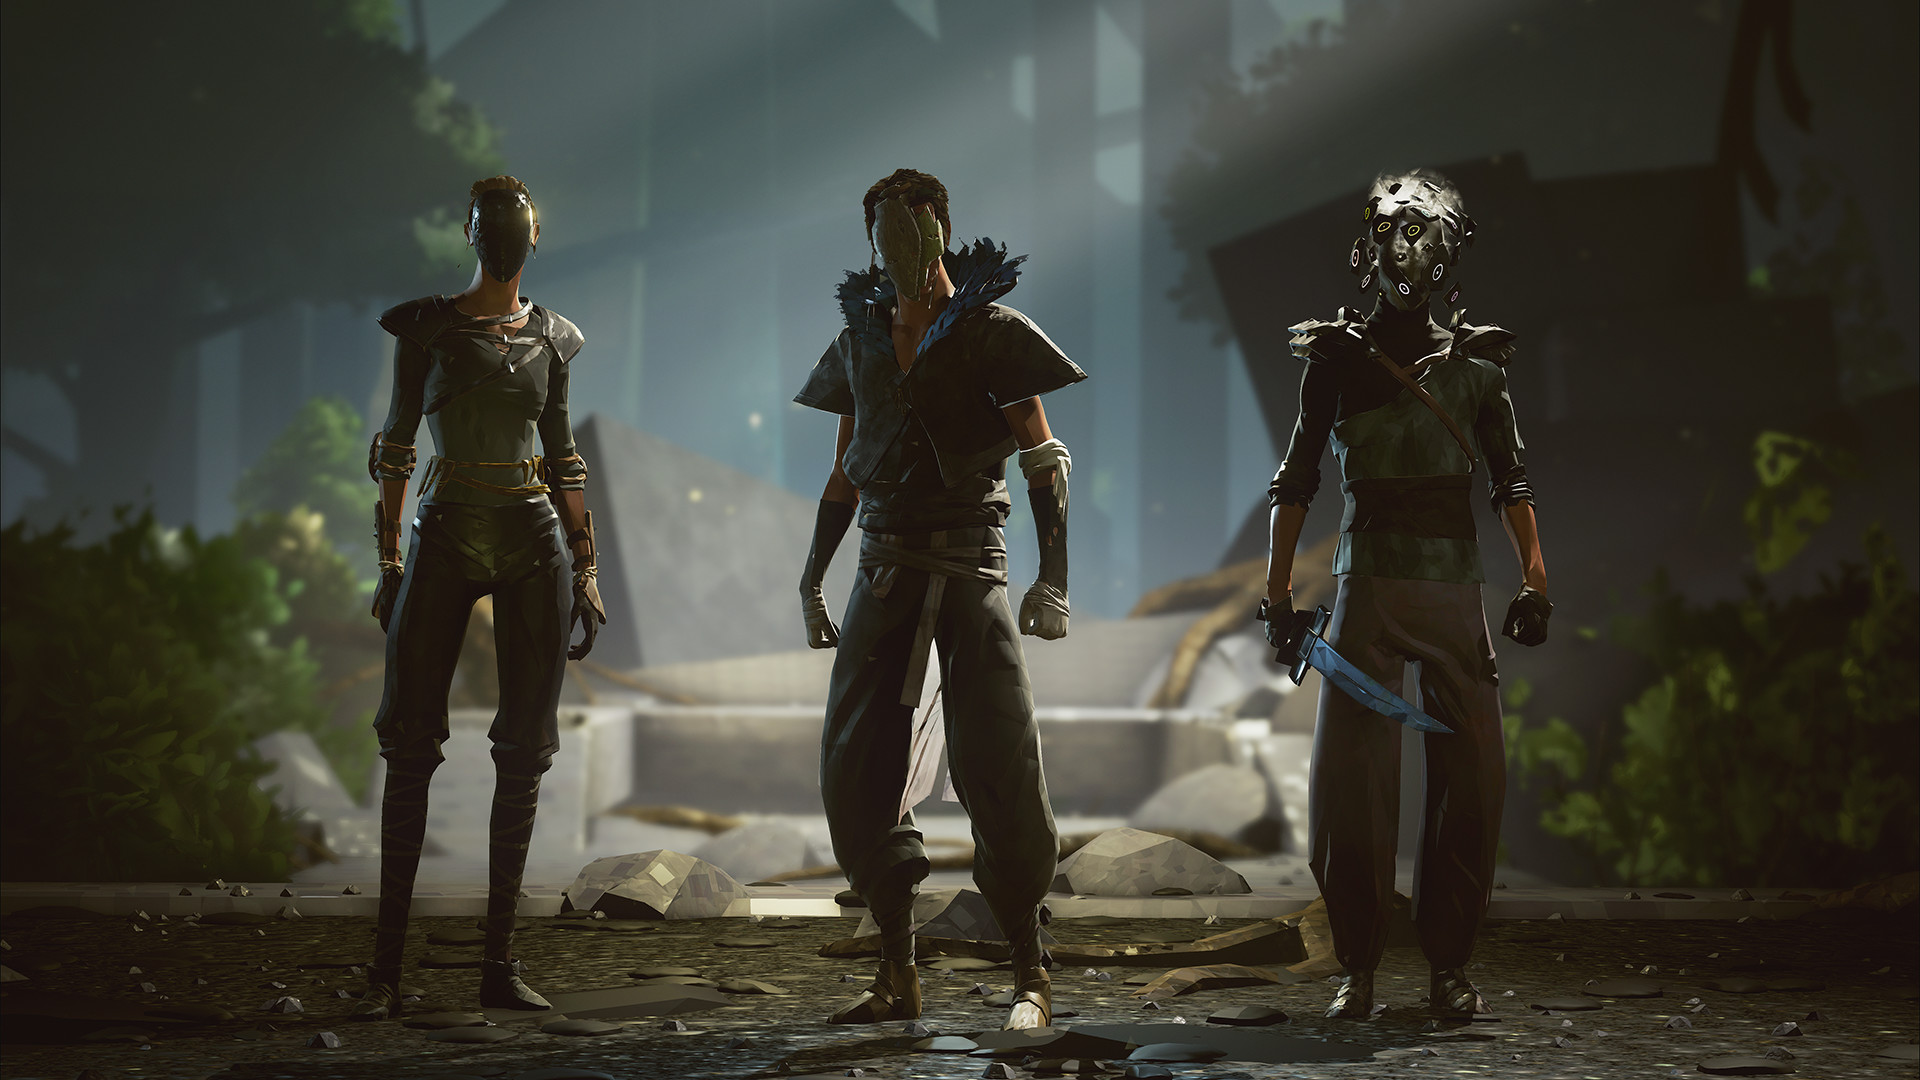 Absolver: Deluxe Edition [v 1.26.494 + 2 DLC] (2017/PC/Русский), RePack от R.G. Catalyst